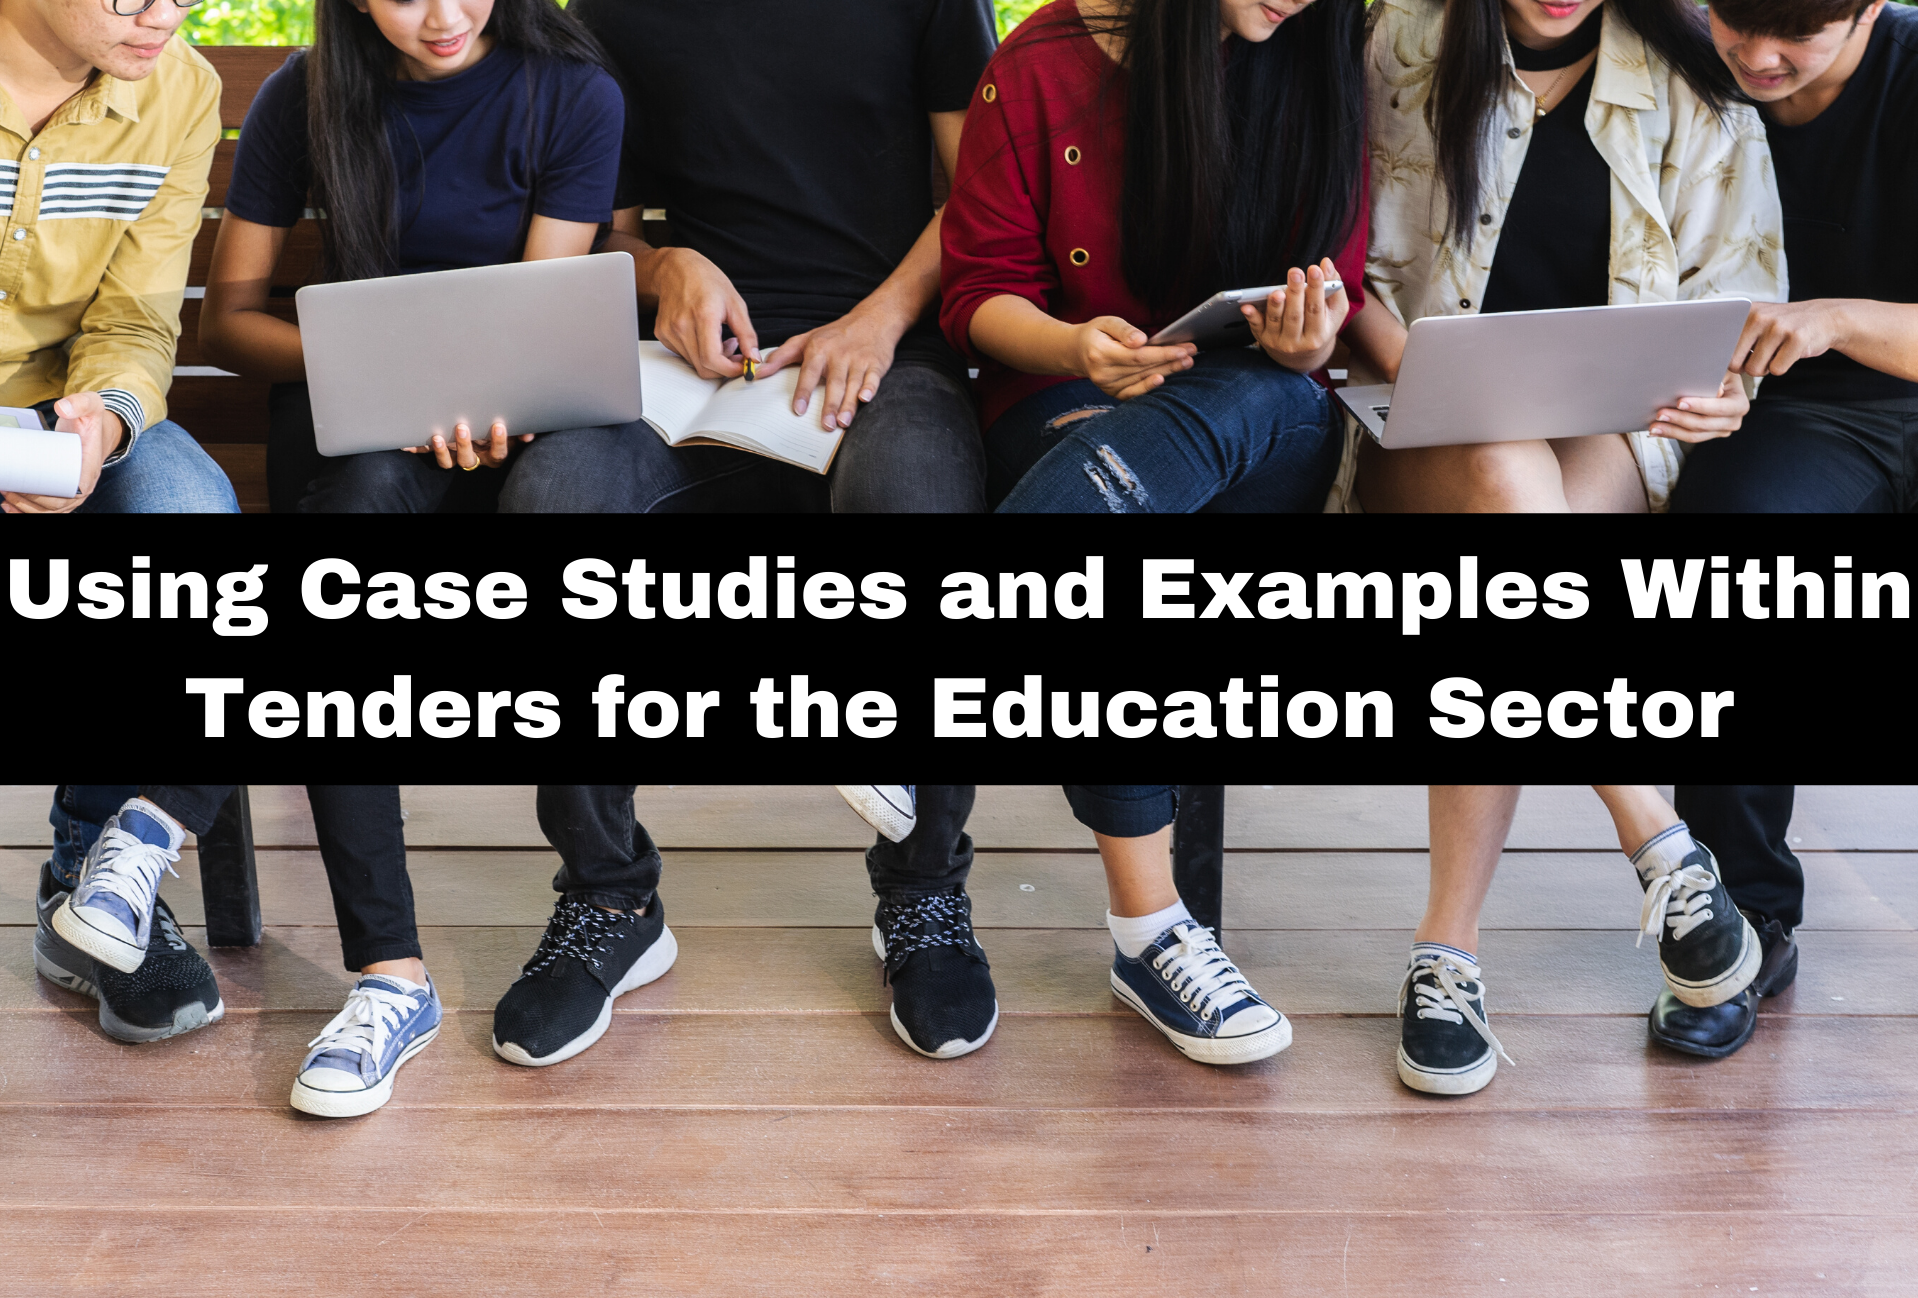 Using Case Studies